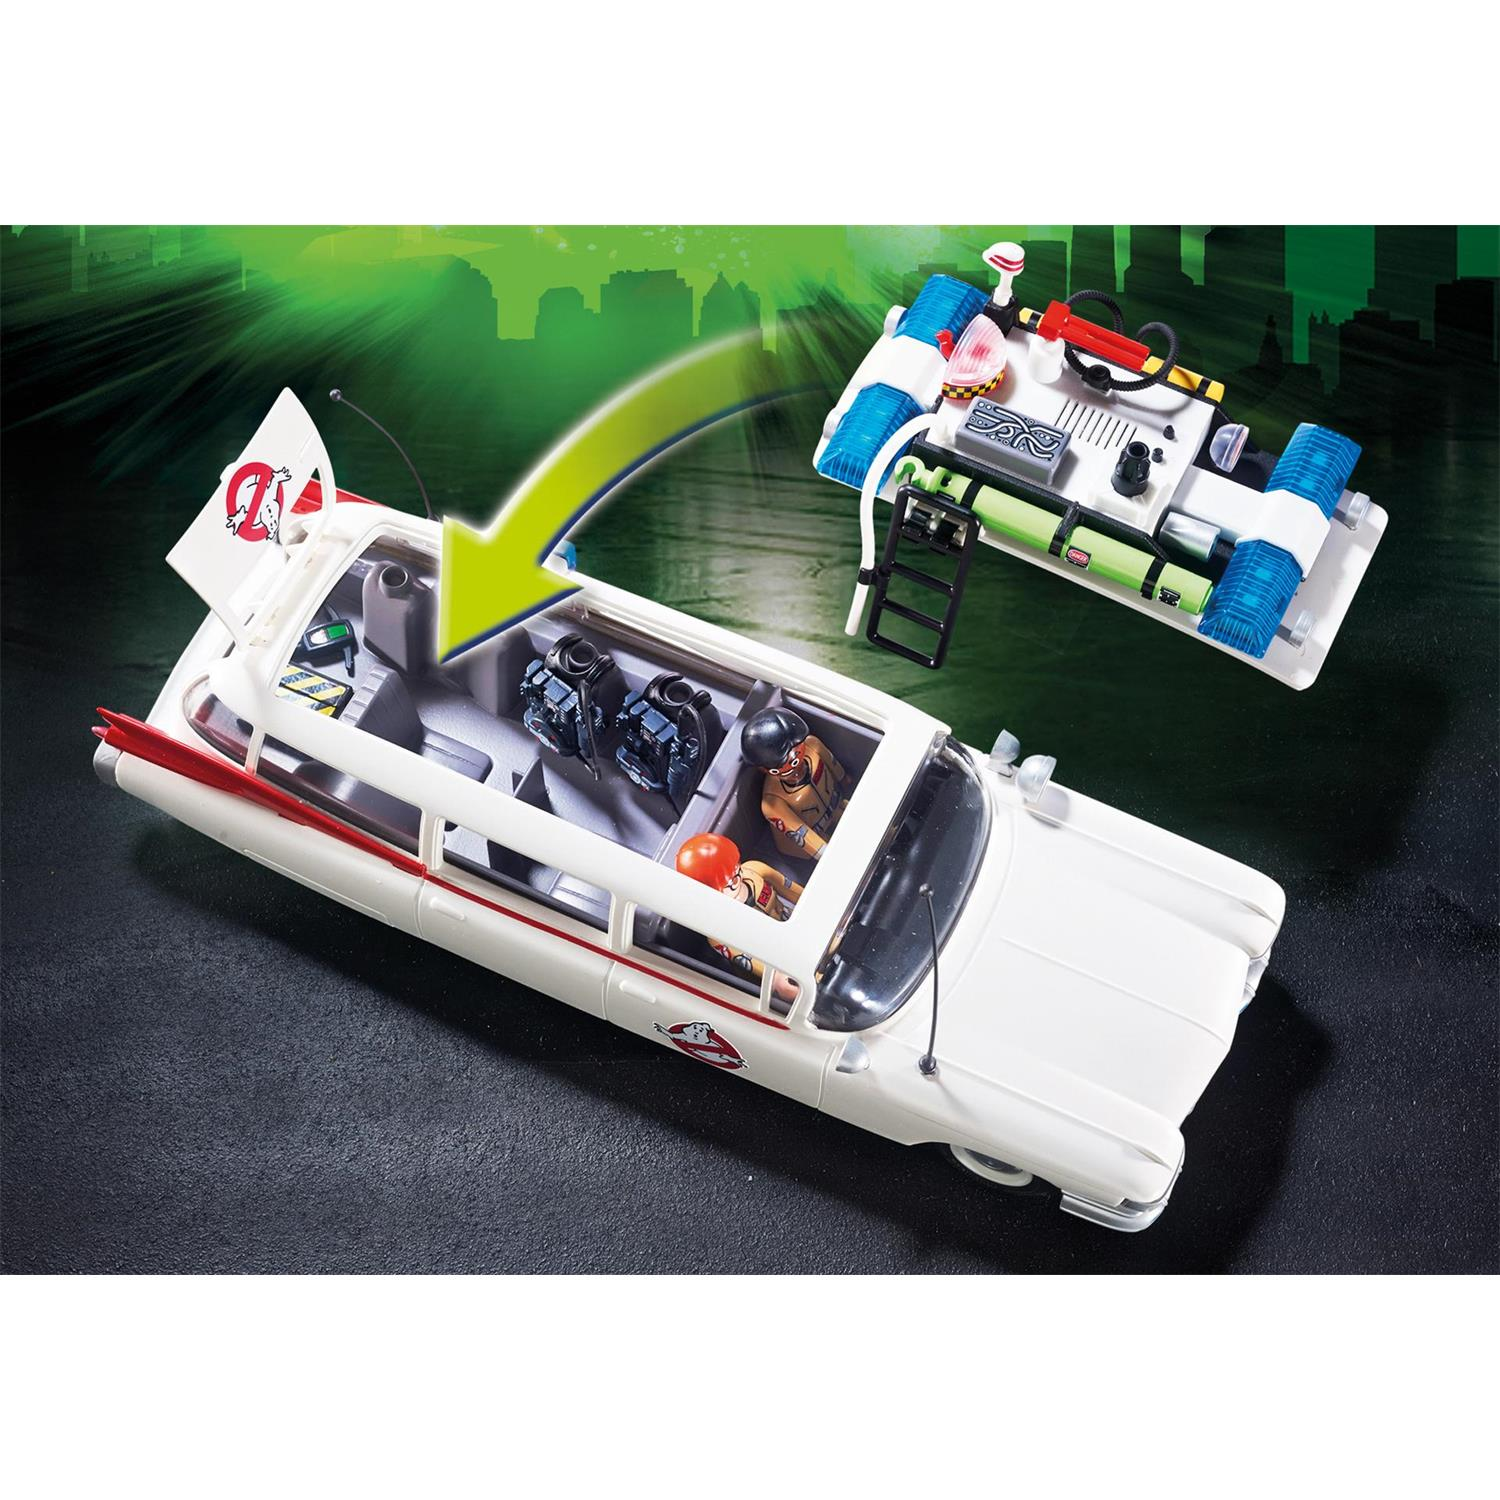 Lego Küche 70er Playmobil 9220 Ghostbusters Ecto 1